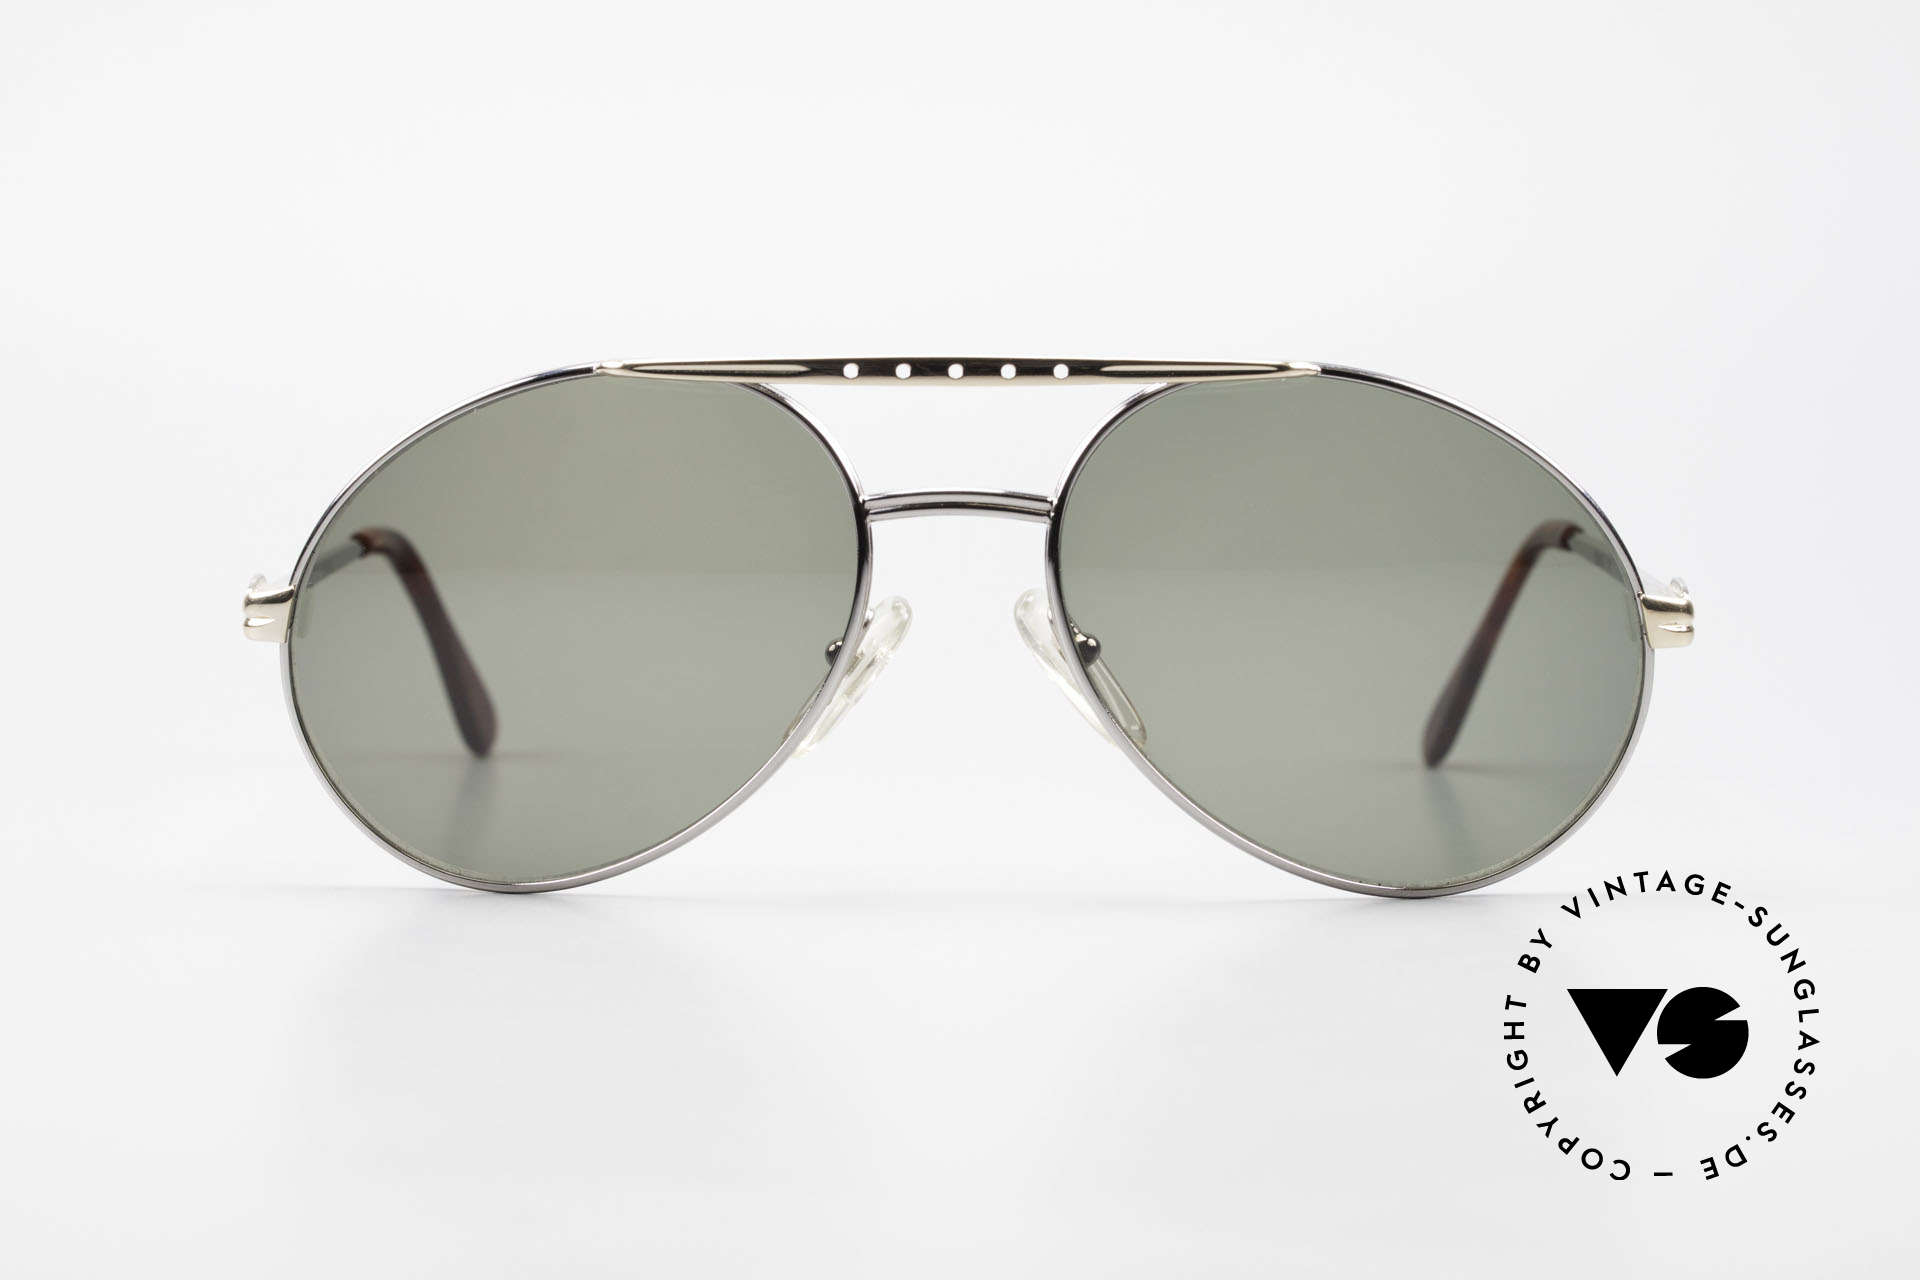 Bugatti 02926 80's Large Sunglasses For Men, made around 1985 in France (1st class spring hinges), Made for Men